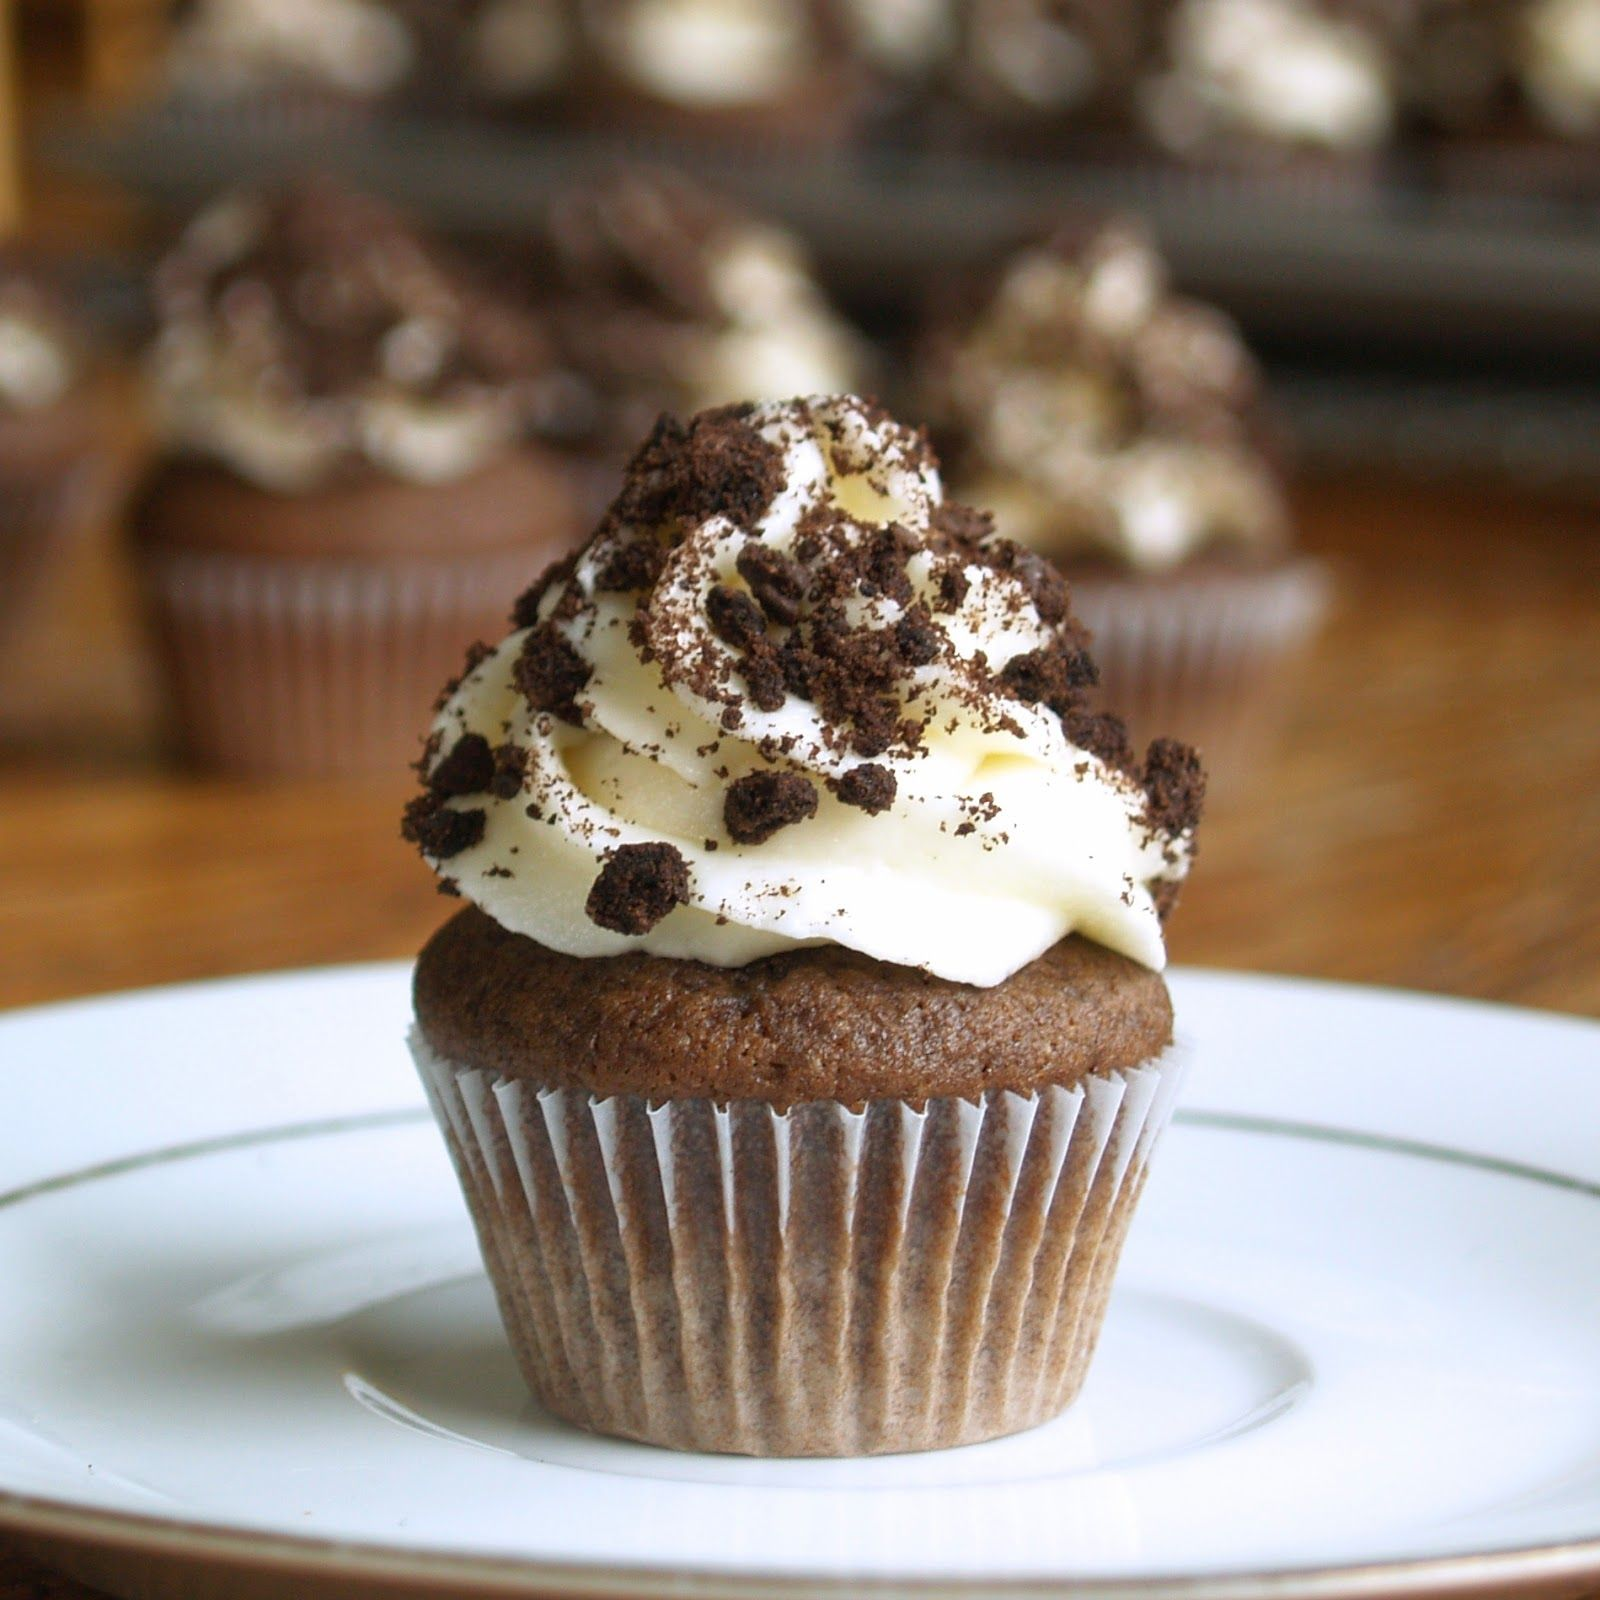 Indulge your sweet tooth with these chocolate cupcakes topped with oreo filling frosting and oreo cookie pieces. Can you say yum?!